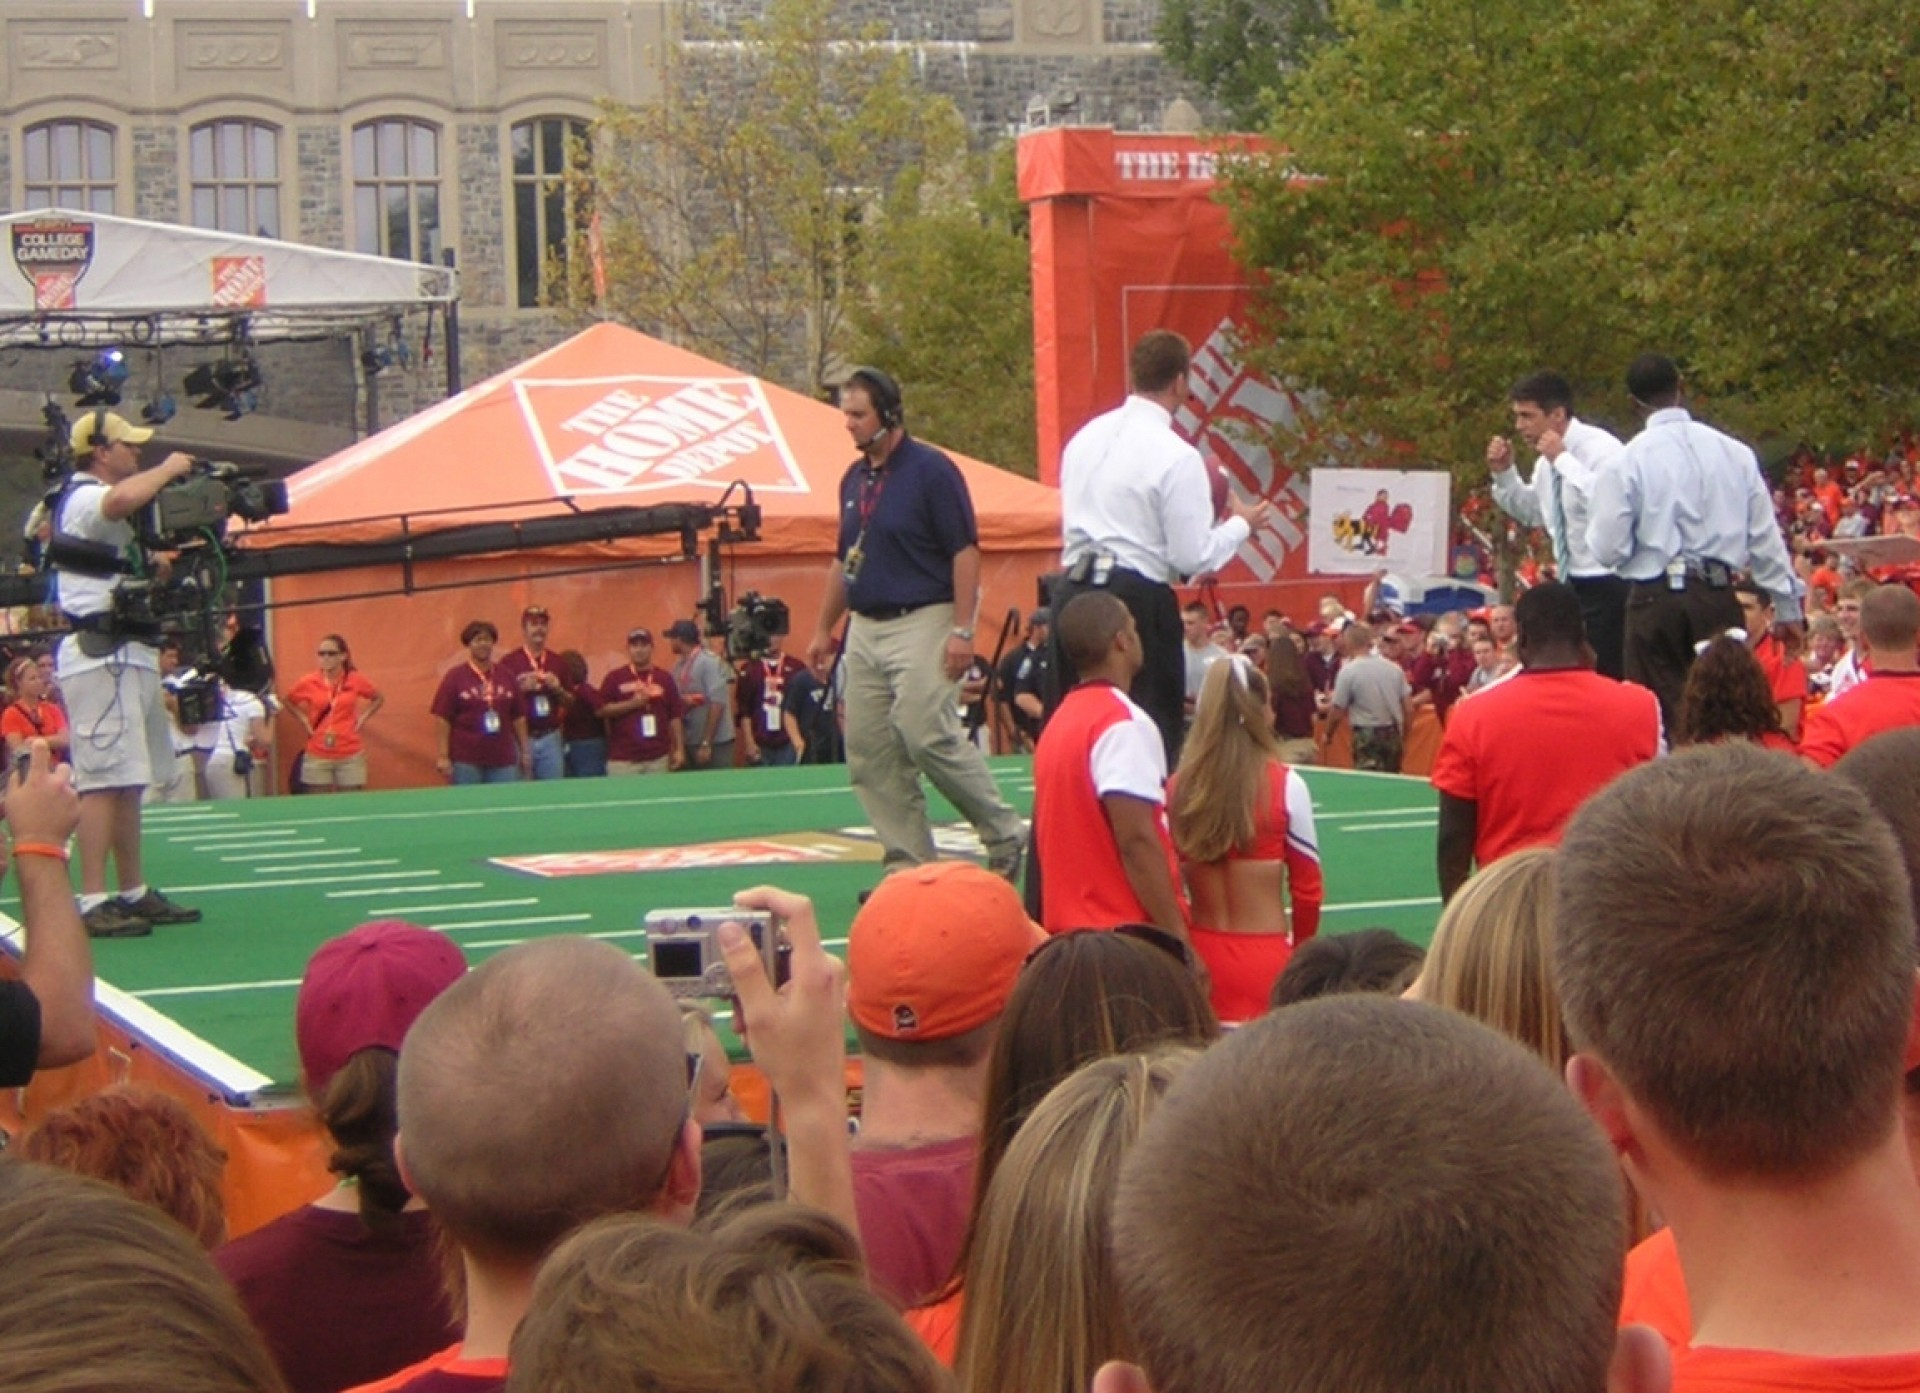 018 Virginia Tech Essay Example College Gameday At The Field Singular Essays That Worked Help Requirements 1920